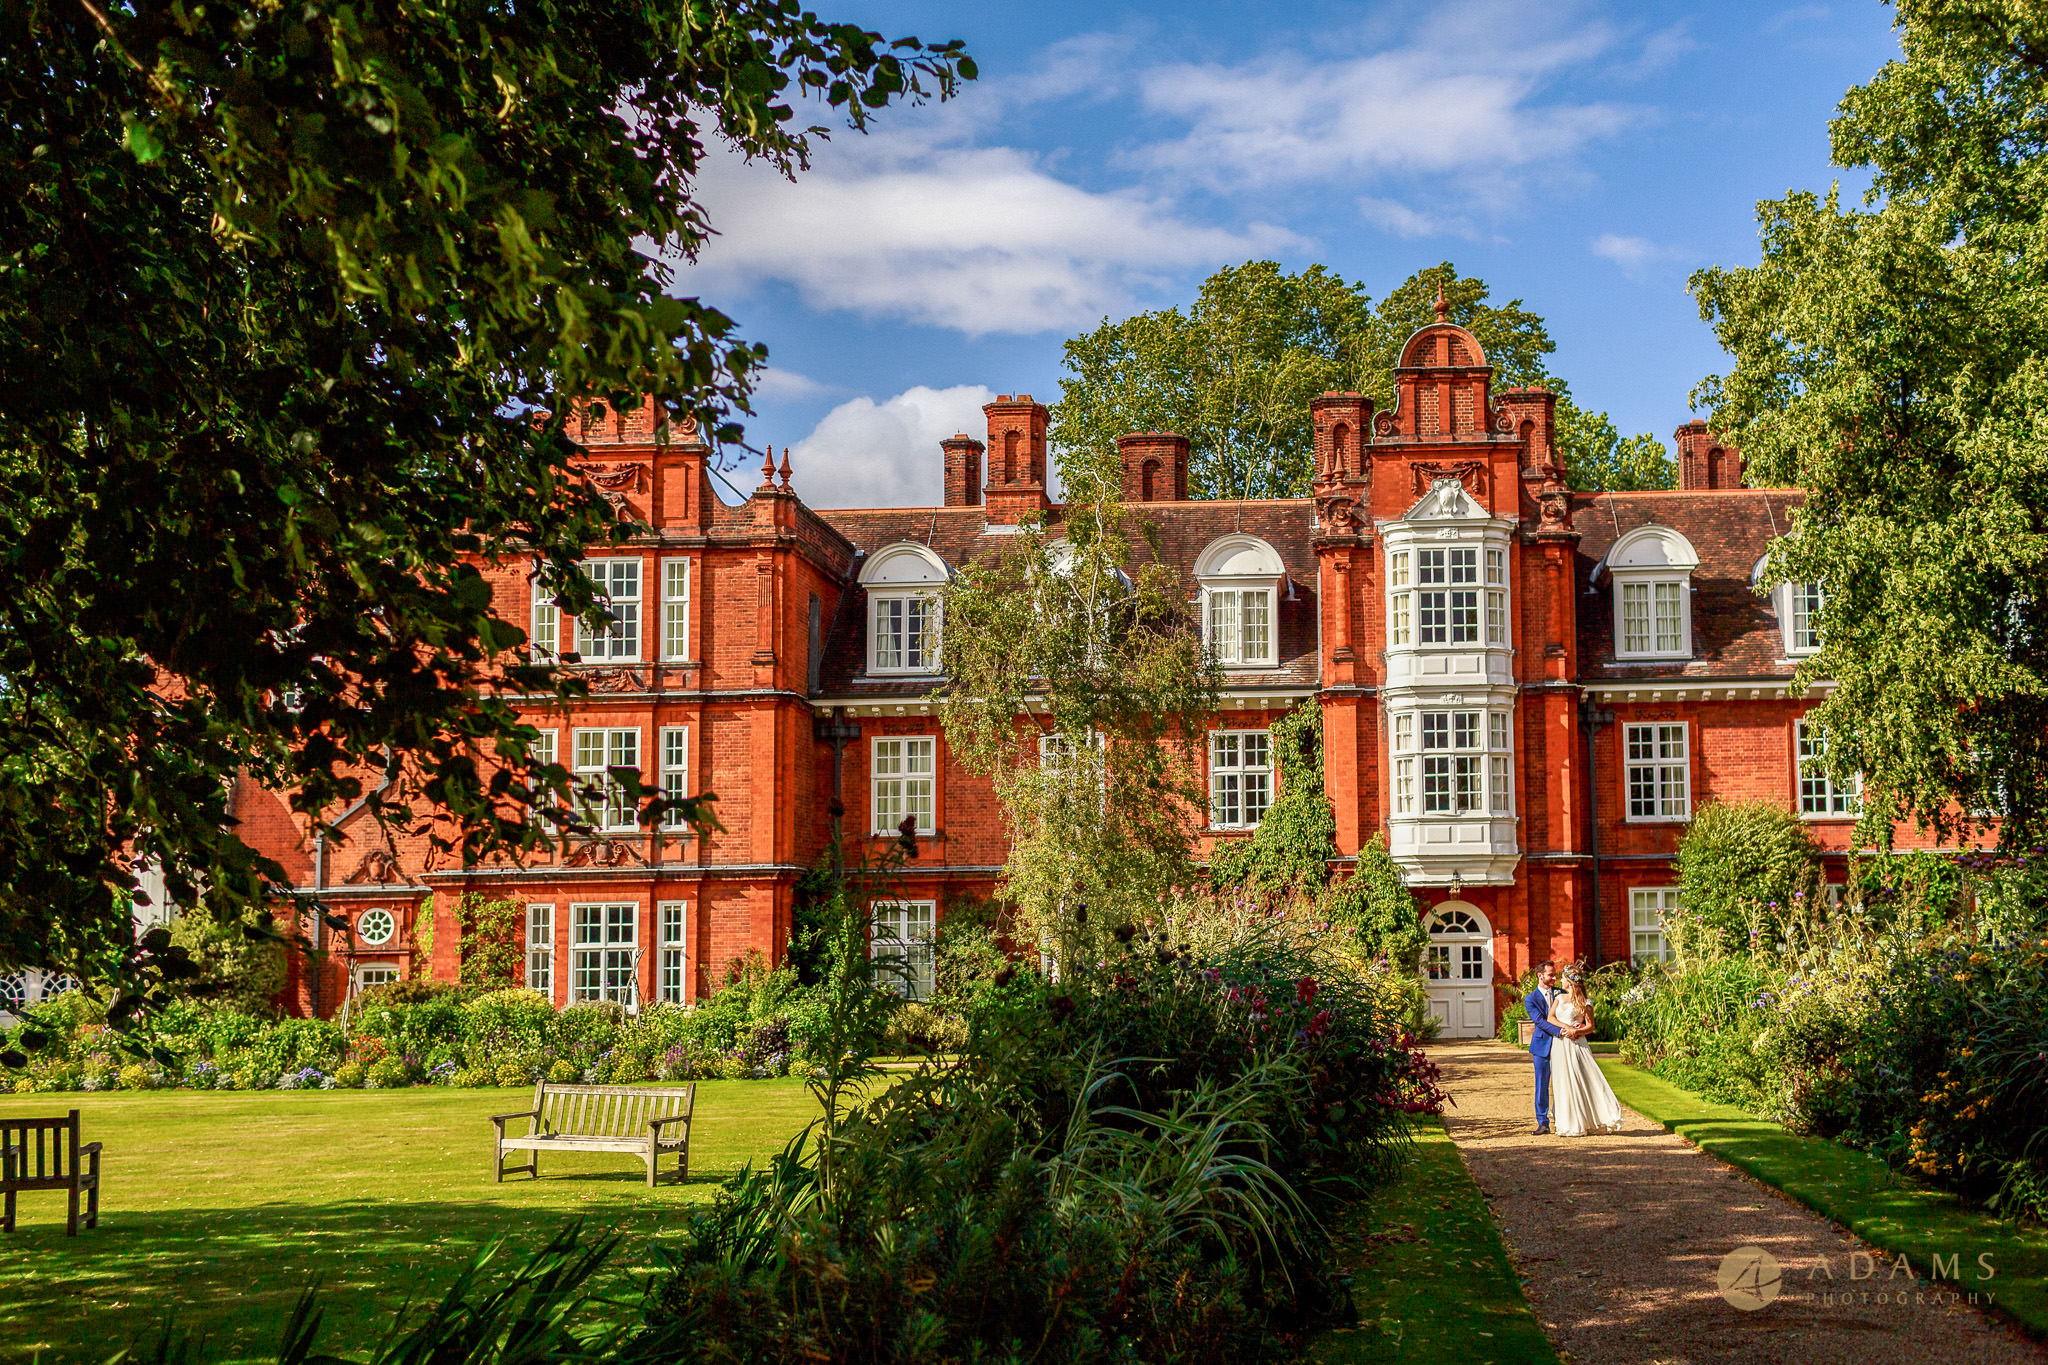 Wedding photographer Cambridge Newnham College portrait of the couple in front of the College